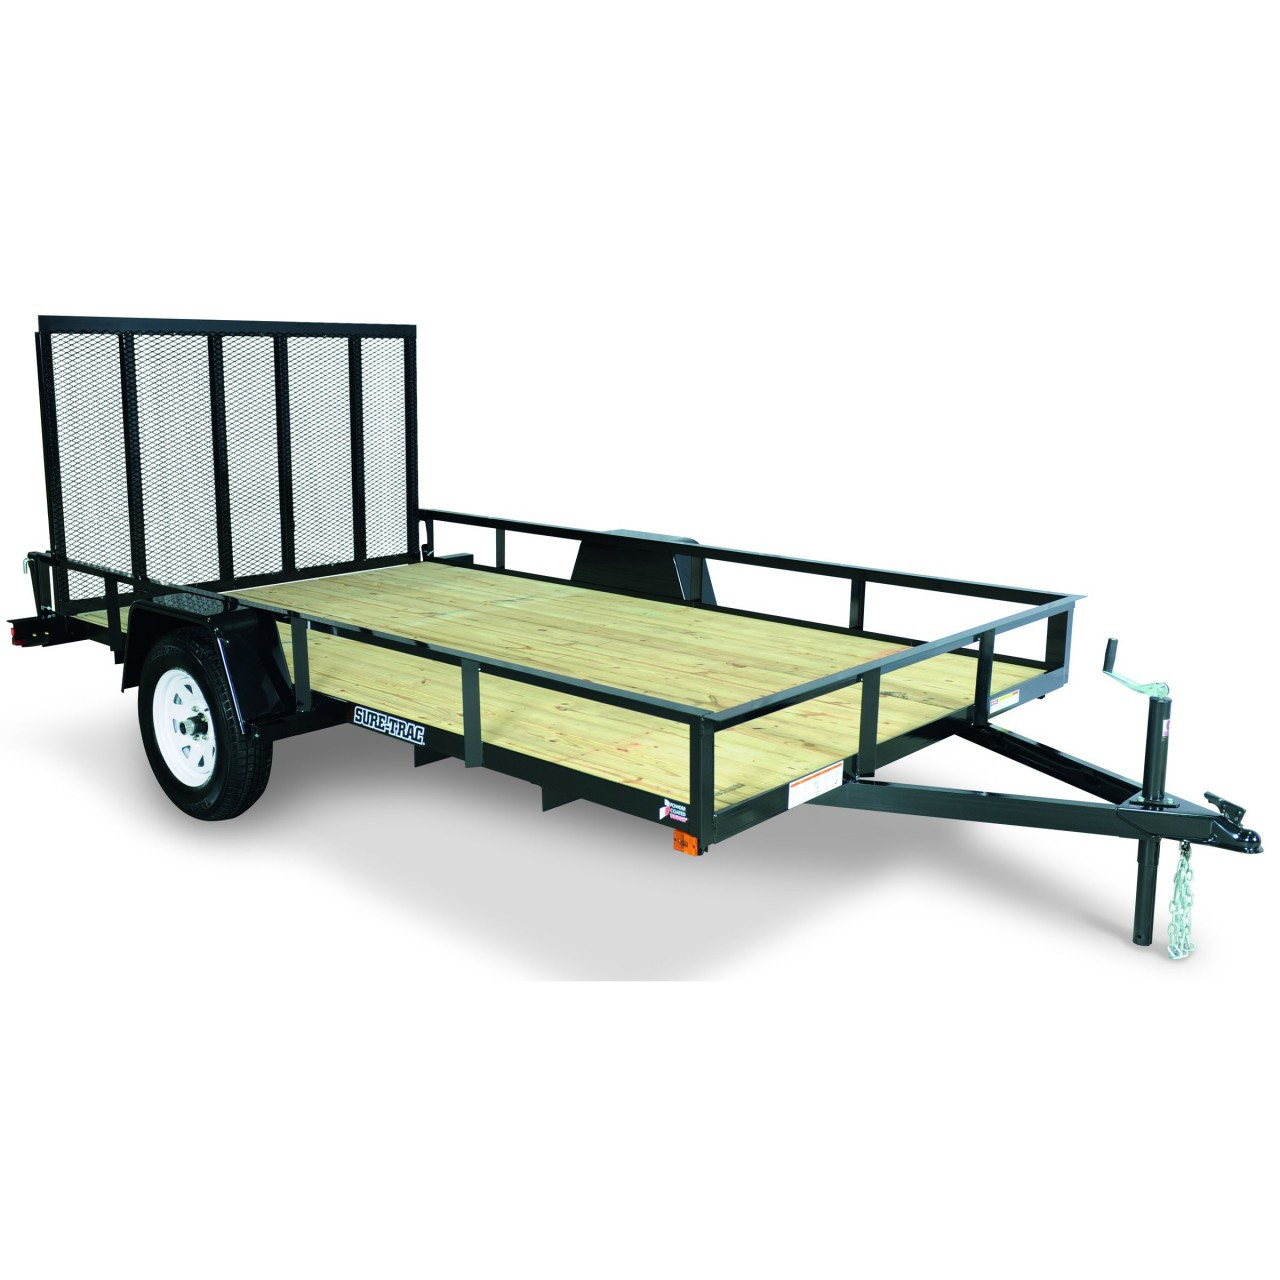 """STR712G --- 7' x 12' Trailer with 11"""" Rails and Ramp Gate"""